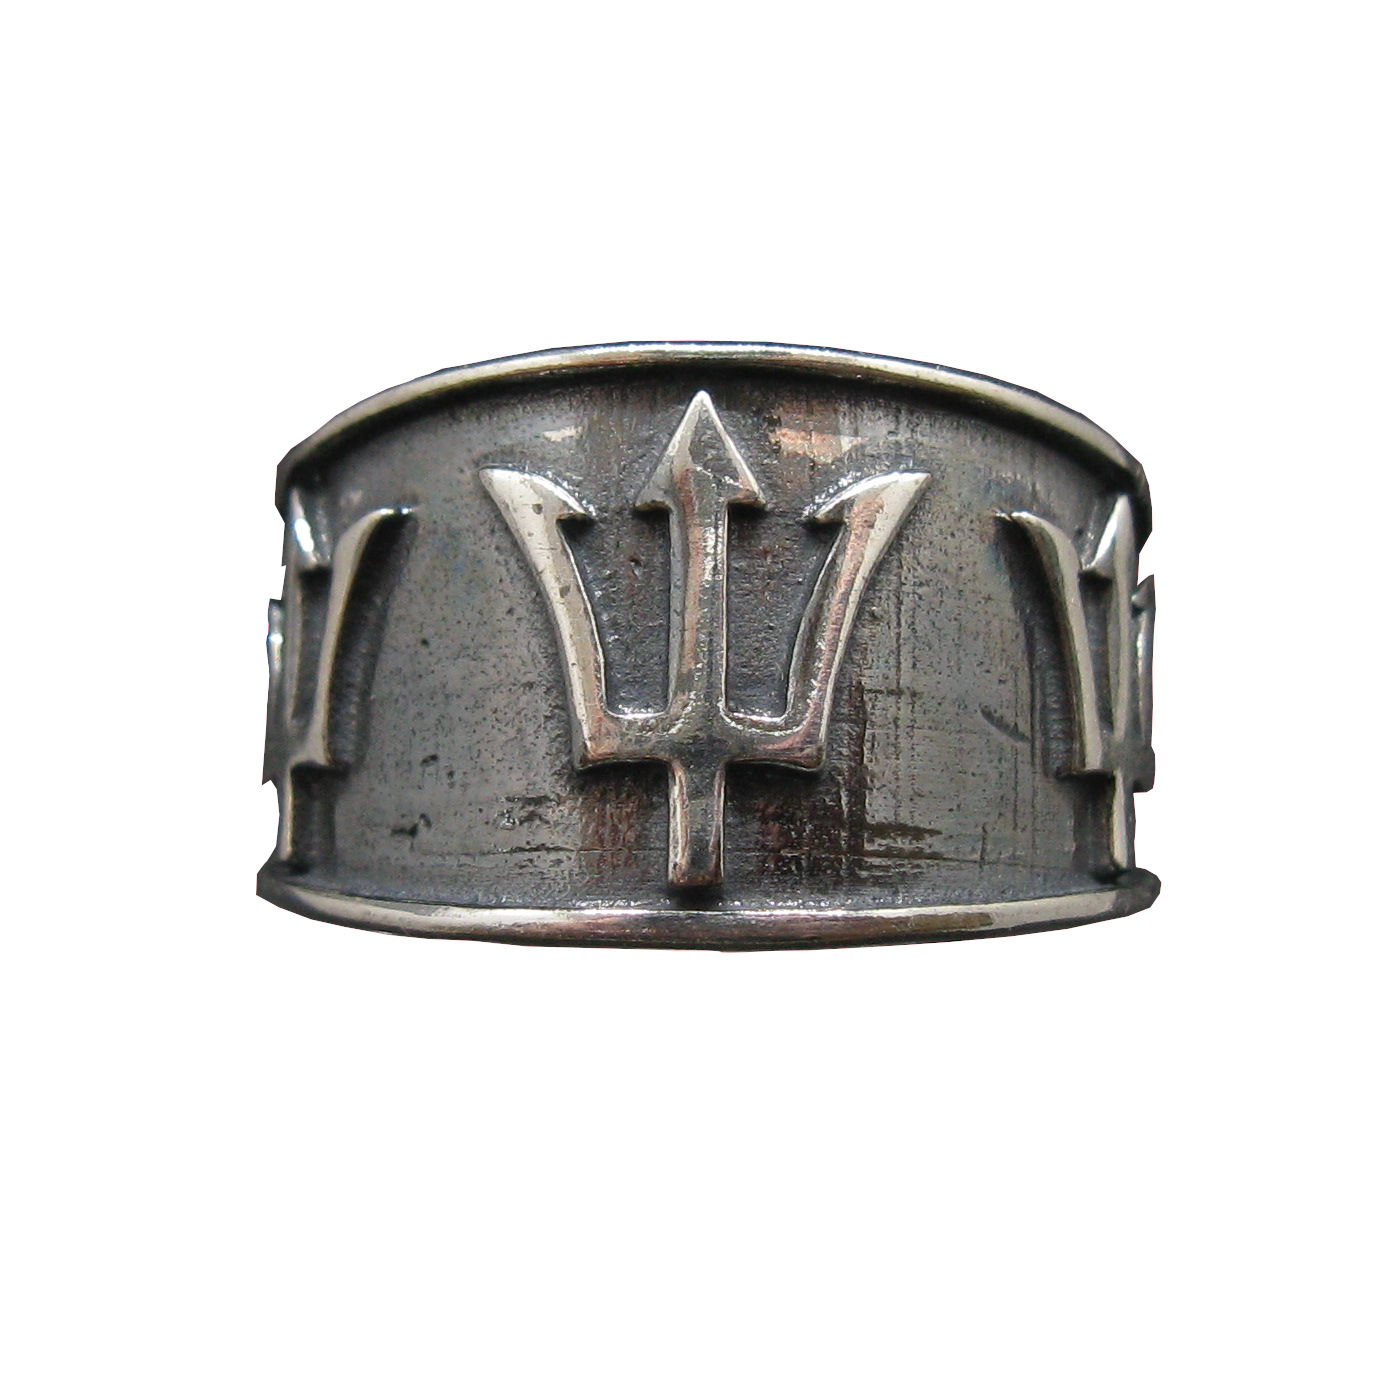 Silver ring - R002039